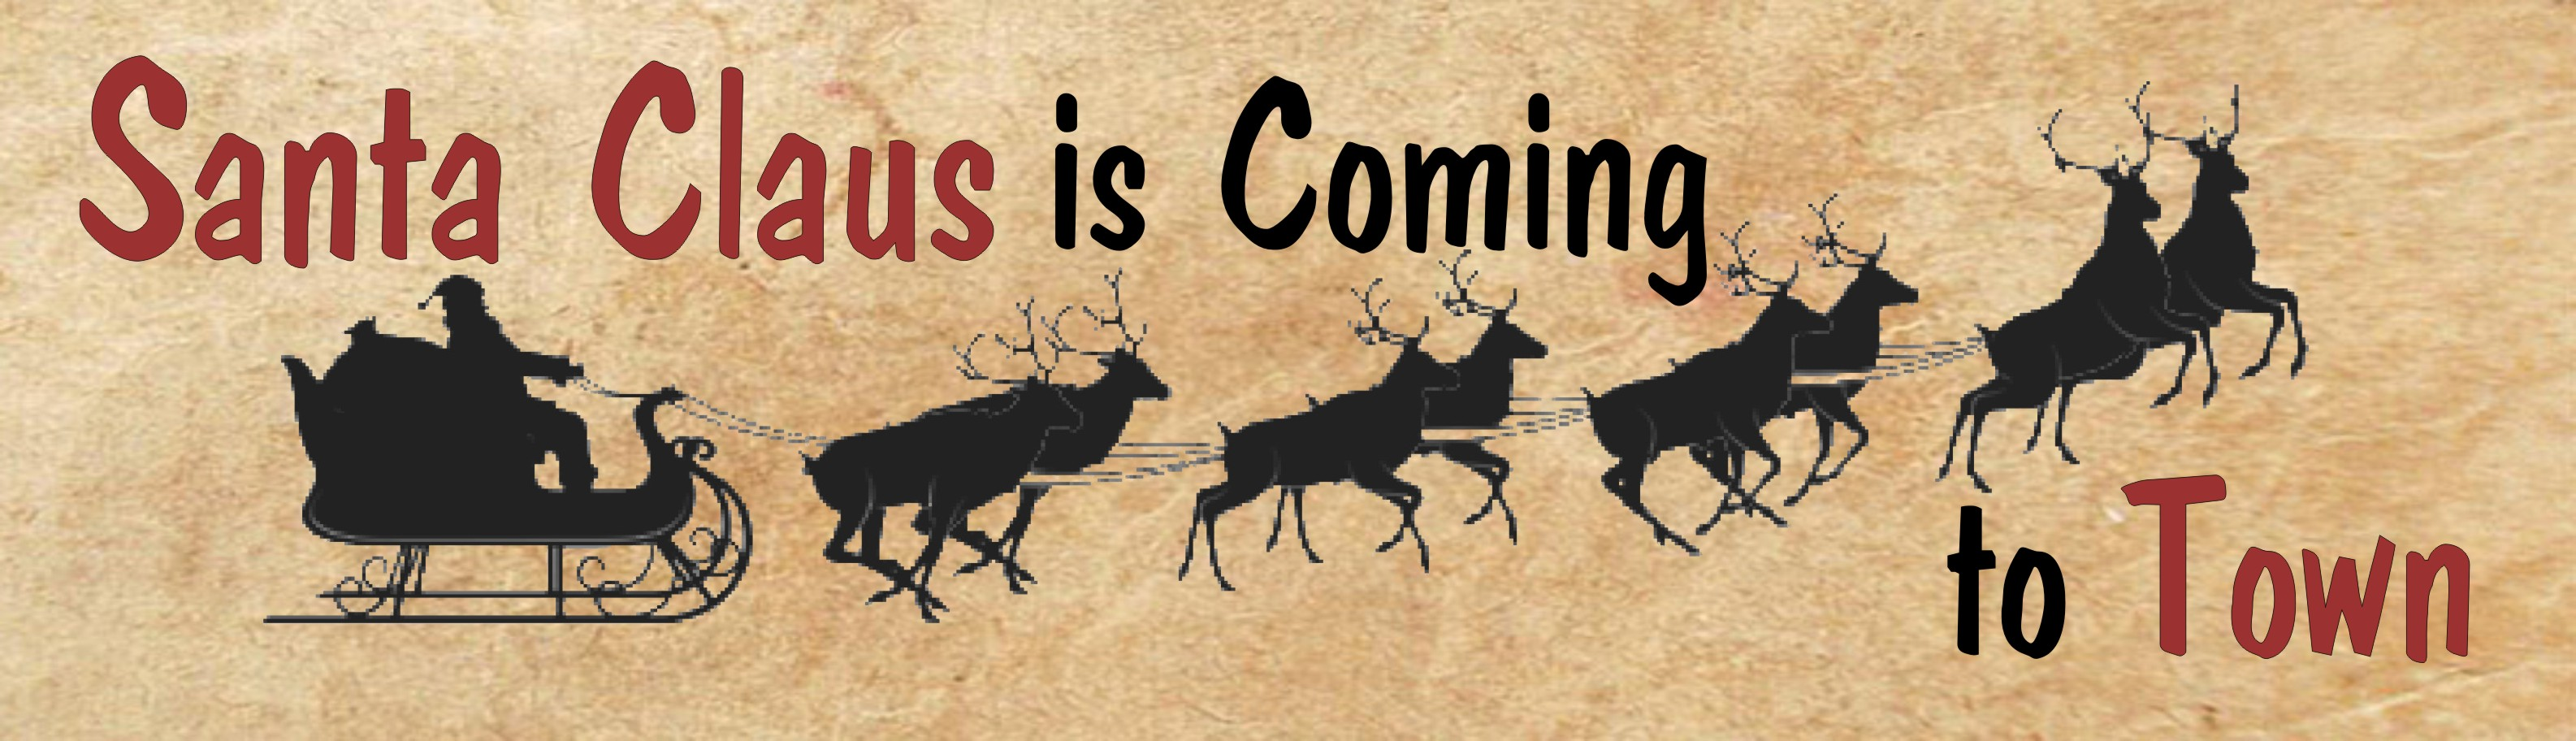 "SANTA CLAUS IS COMING TO TOWN 10.5"" x 3"" WOODEN BLOCK SIGN"